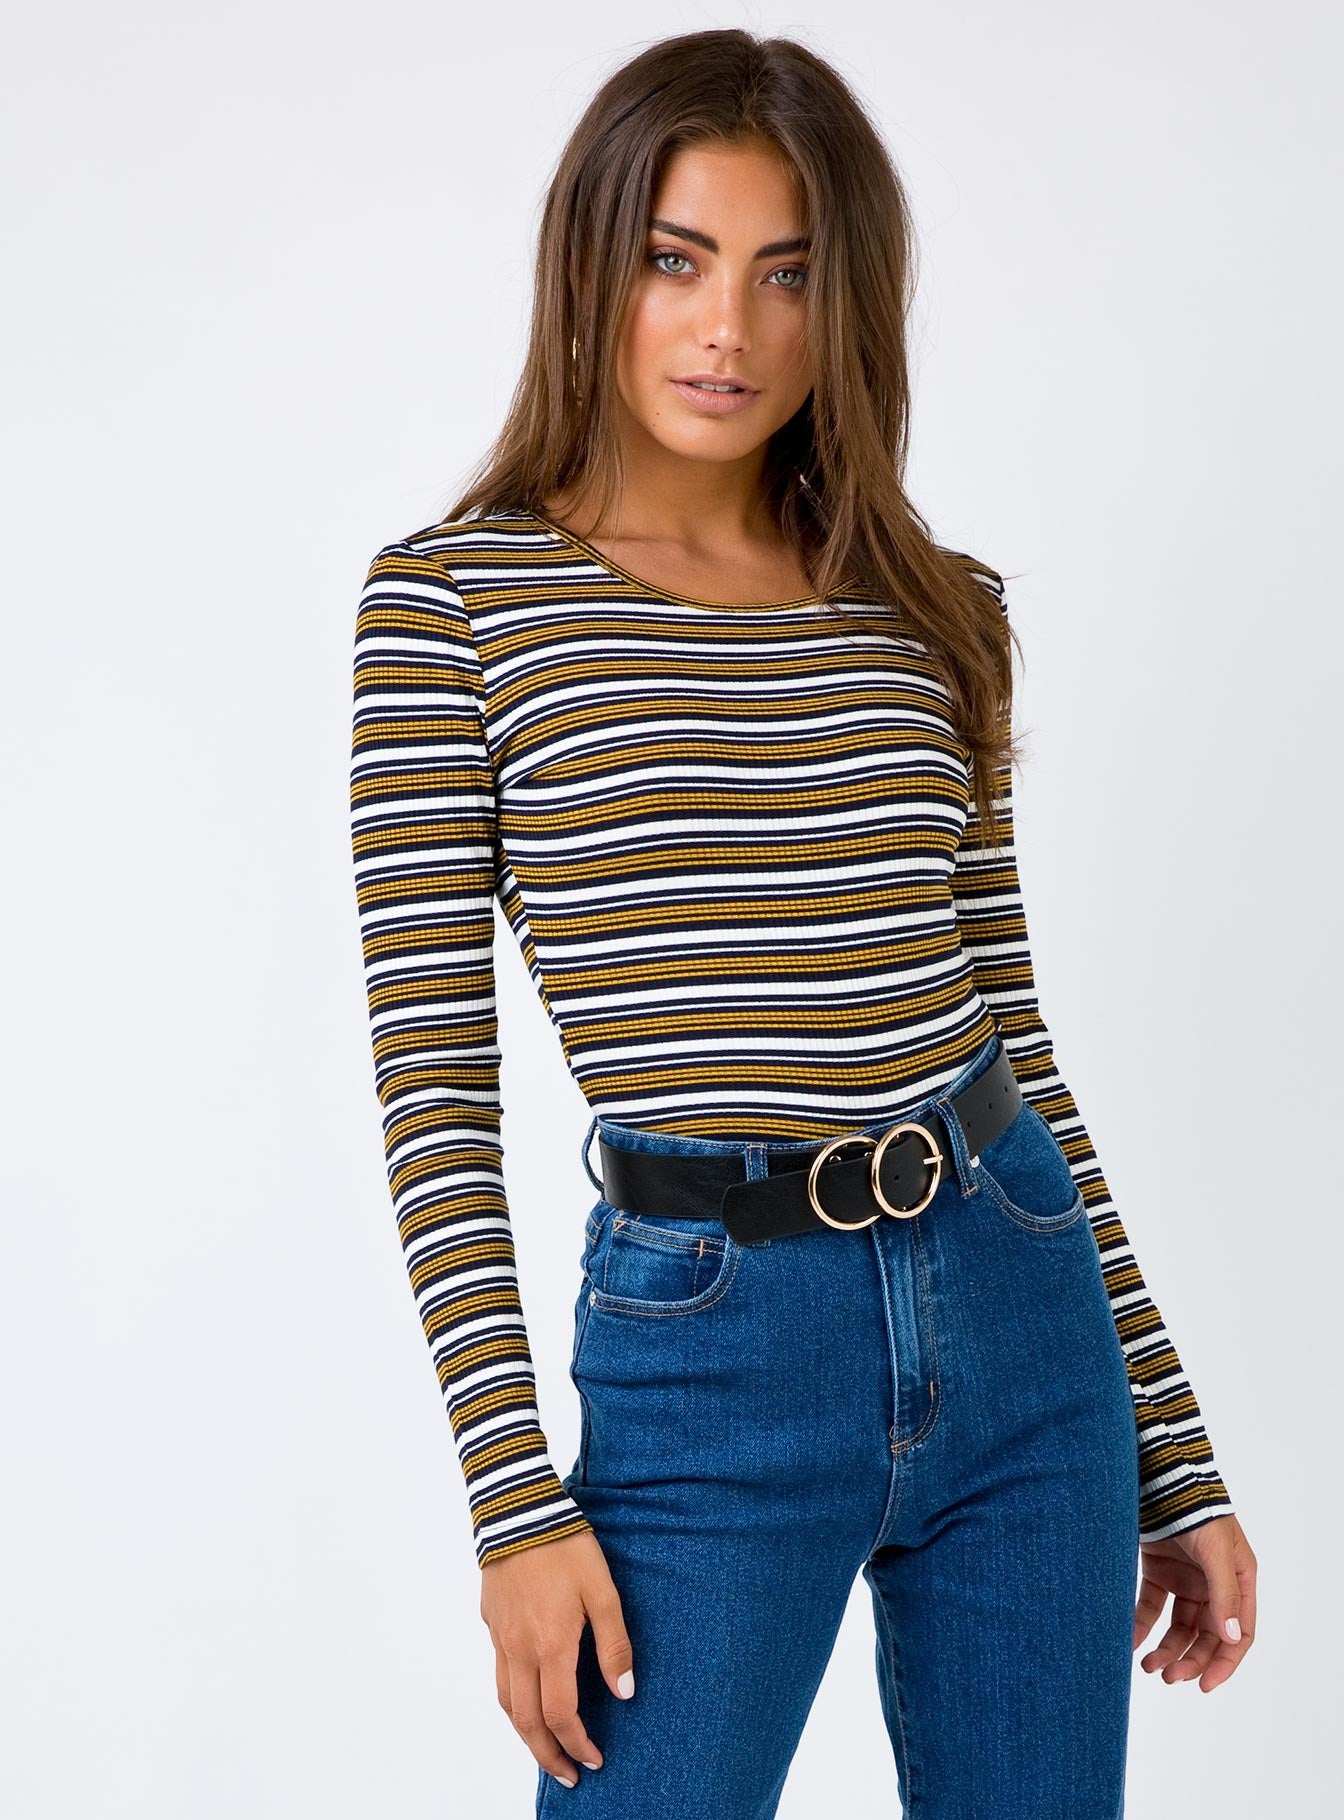 Florentine Top Black/Yellow